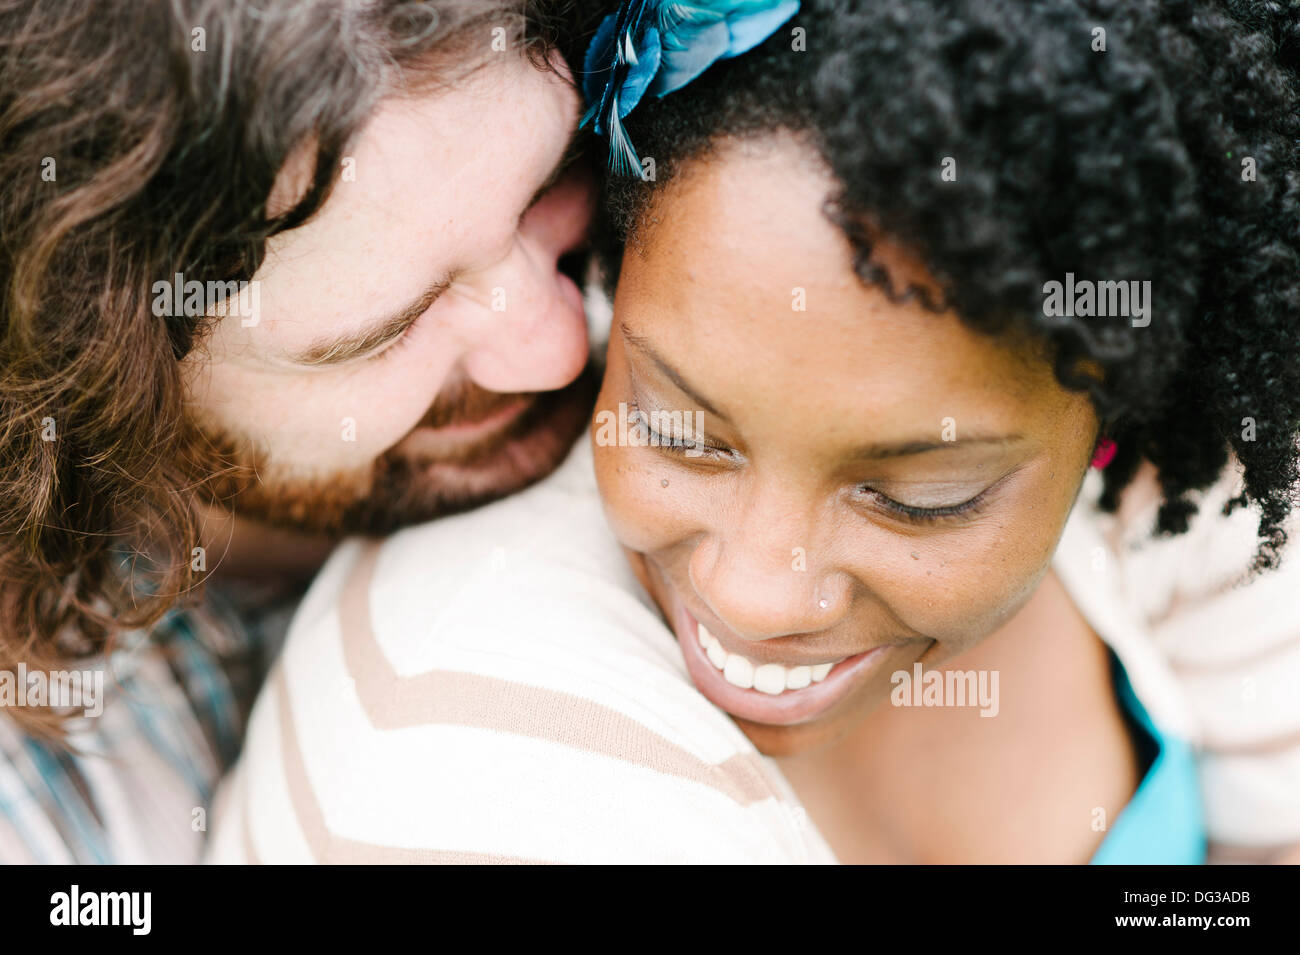 Smiling couple interracial, Close Up, High Angle View Photo Stock